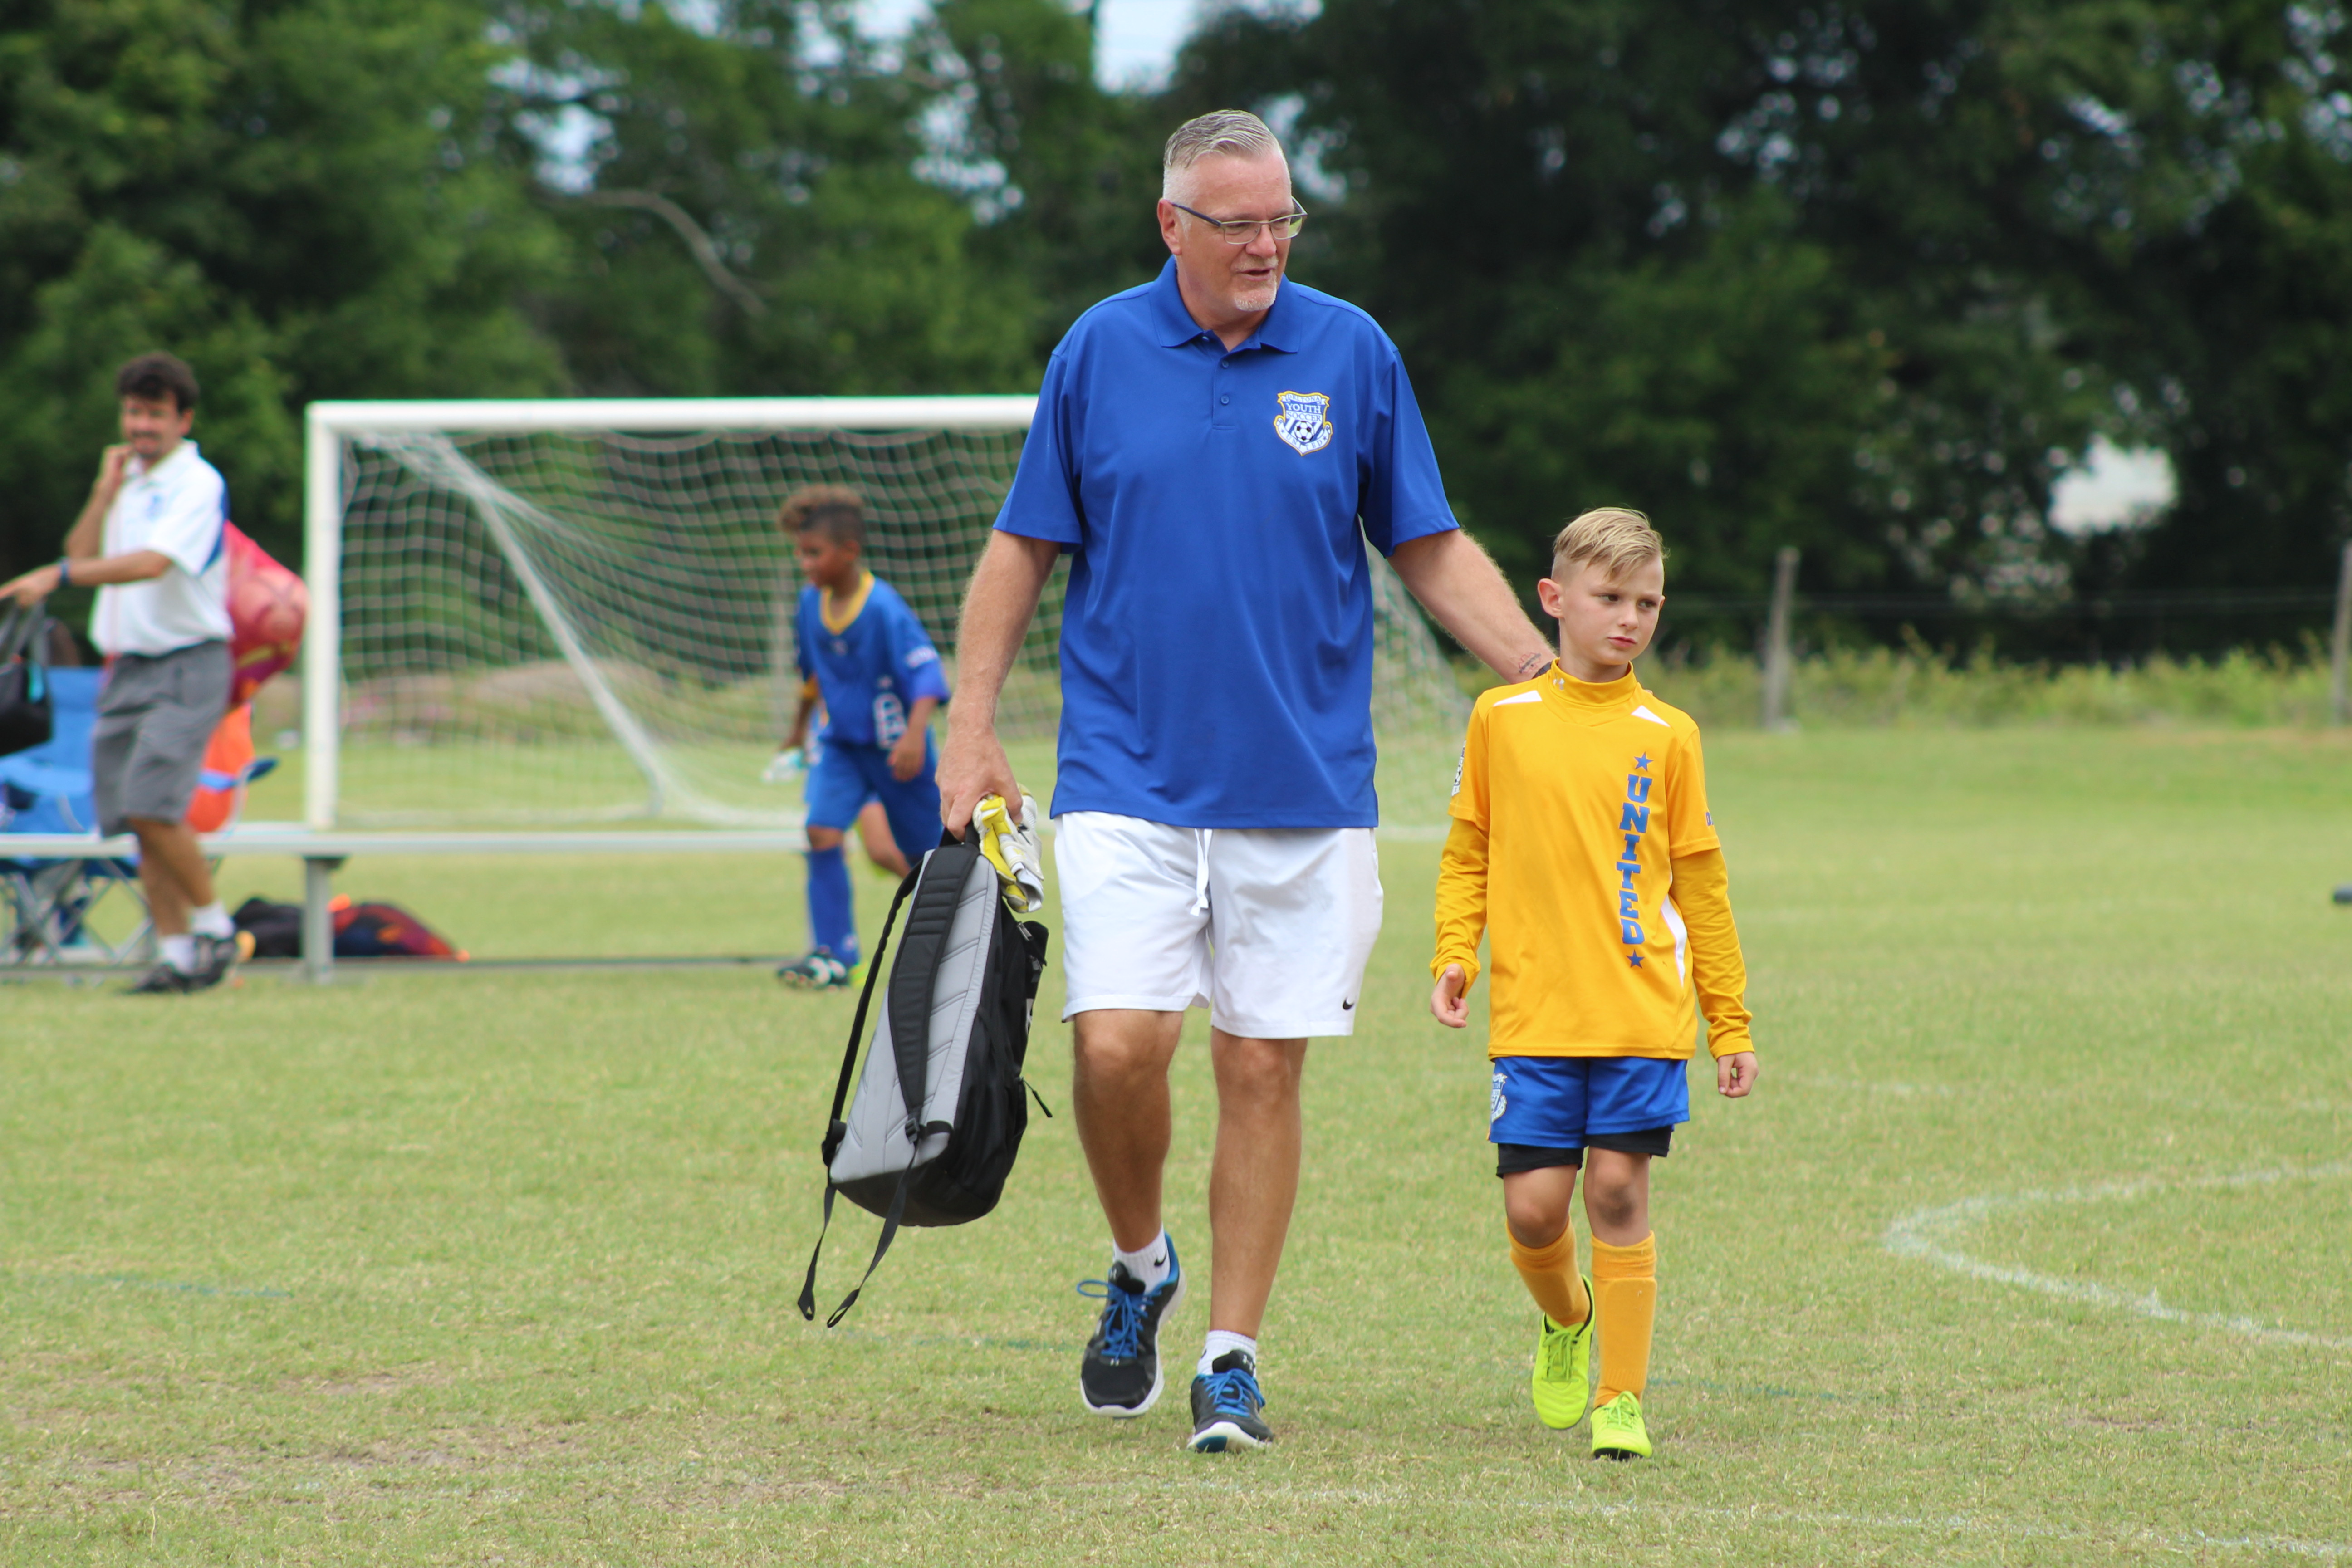 Father Son Soccer